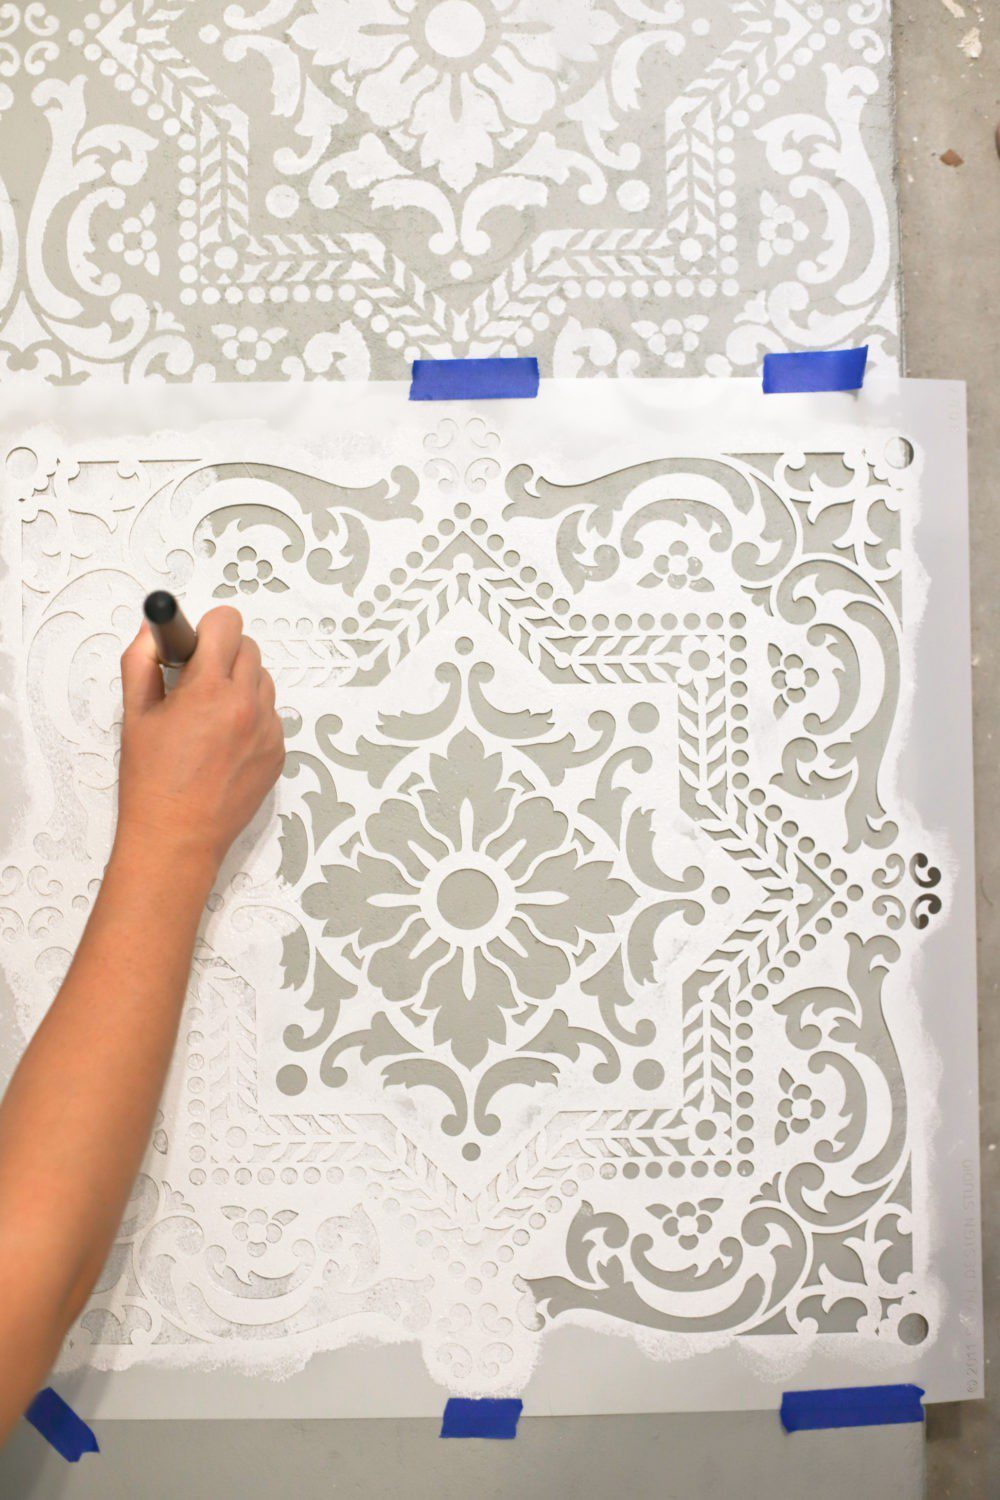 Laundry Room DIY: How to Paint a Cement Floor with Stencils | Laundry Room DIY: How to Paint a Cement Floor with Stencils by popular home decor blog, Fresh Mommy: image of a cement floor being painted with a stencil and white floor paint.